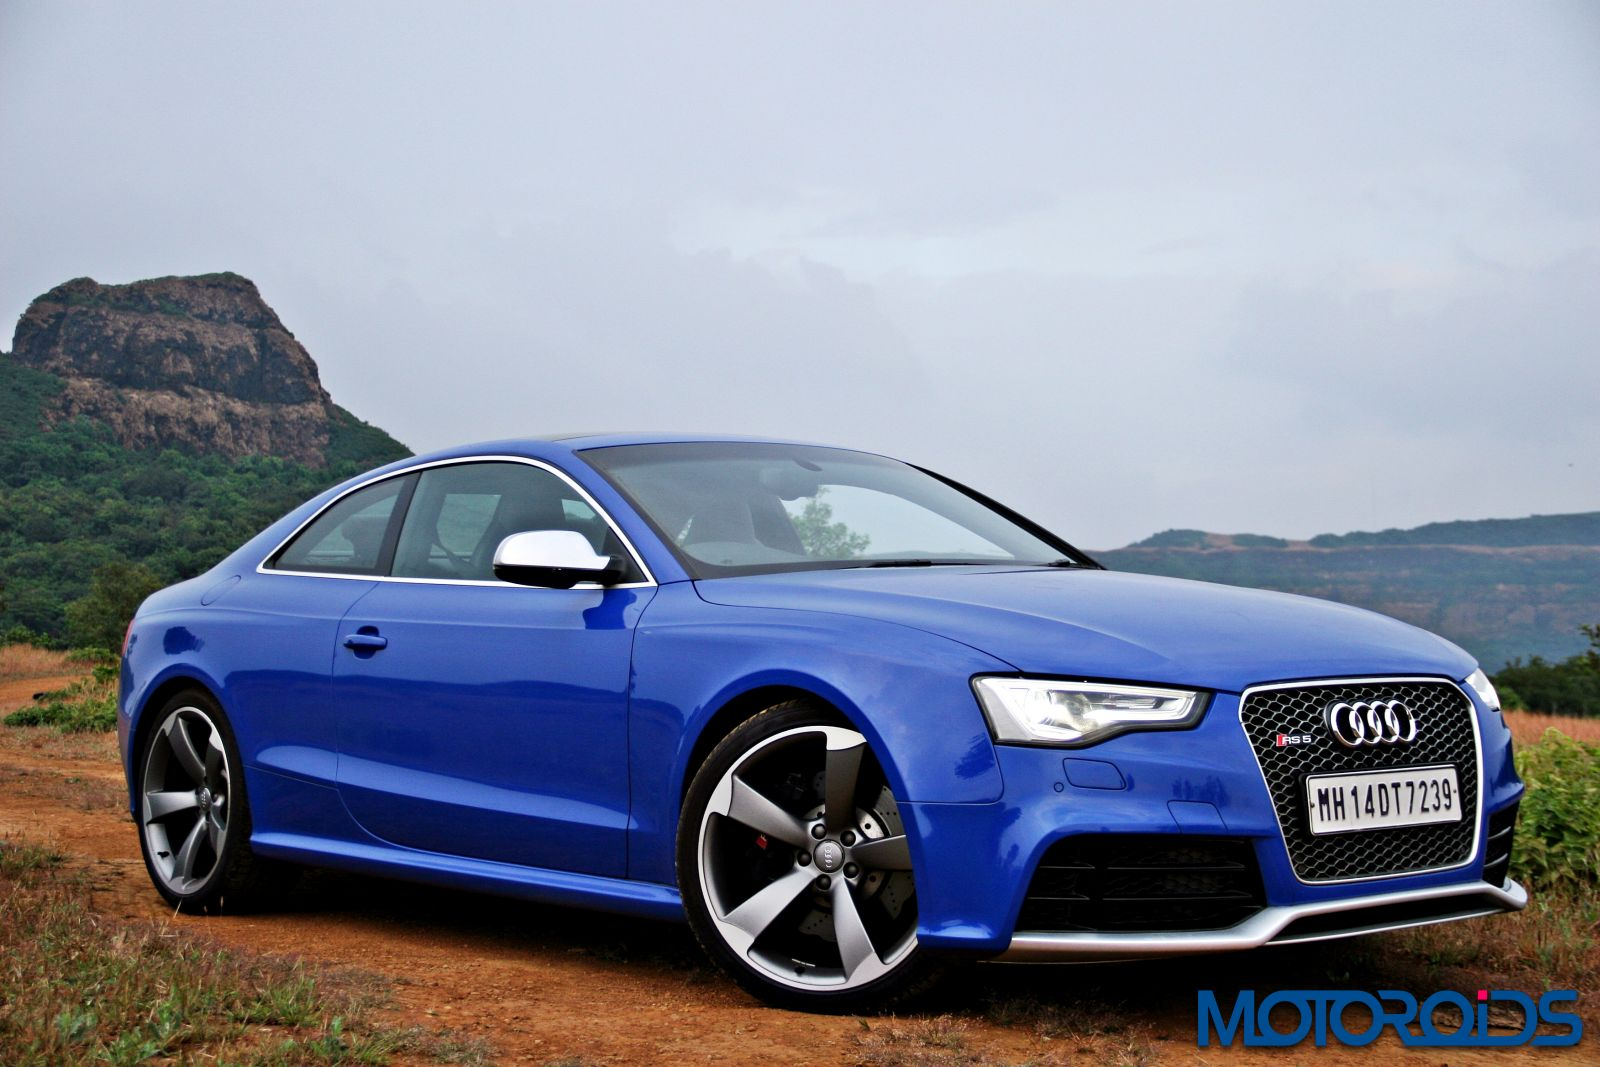 Audi Rs5 4 2 V8 Review Surgical Strike Motoroids